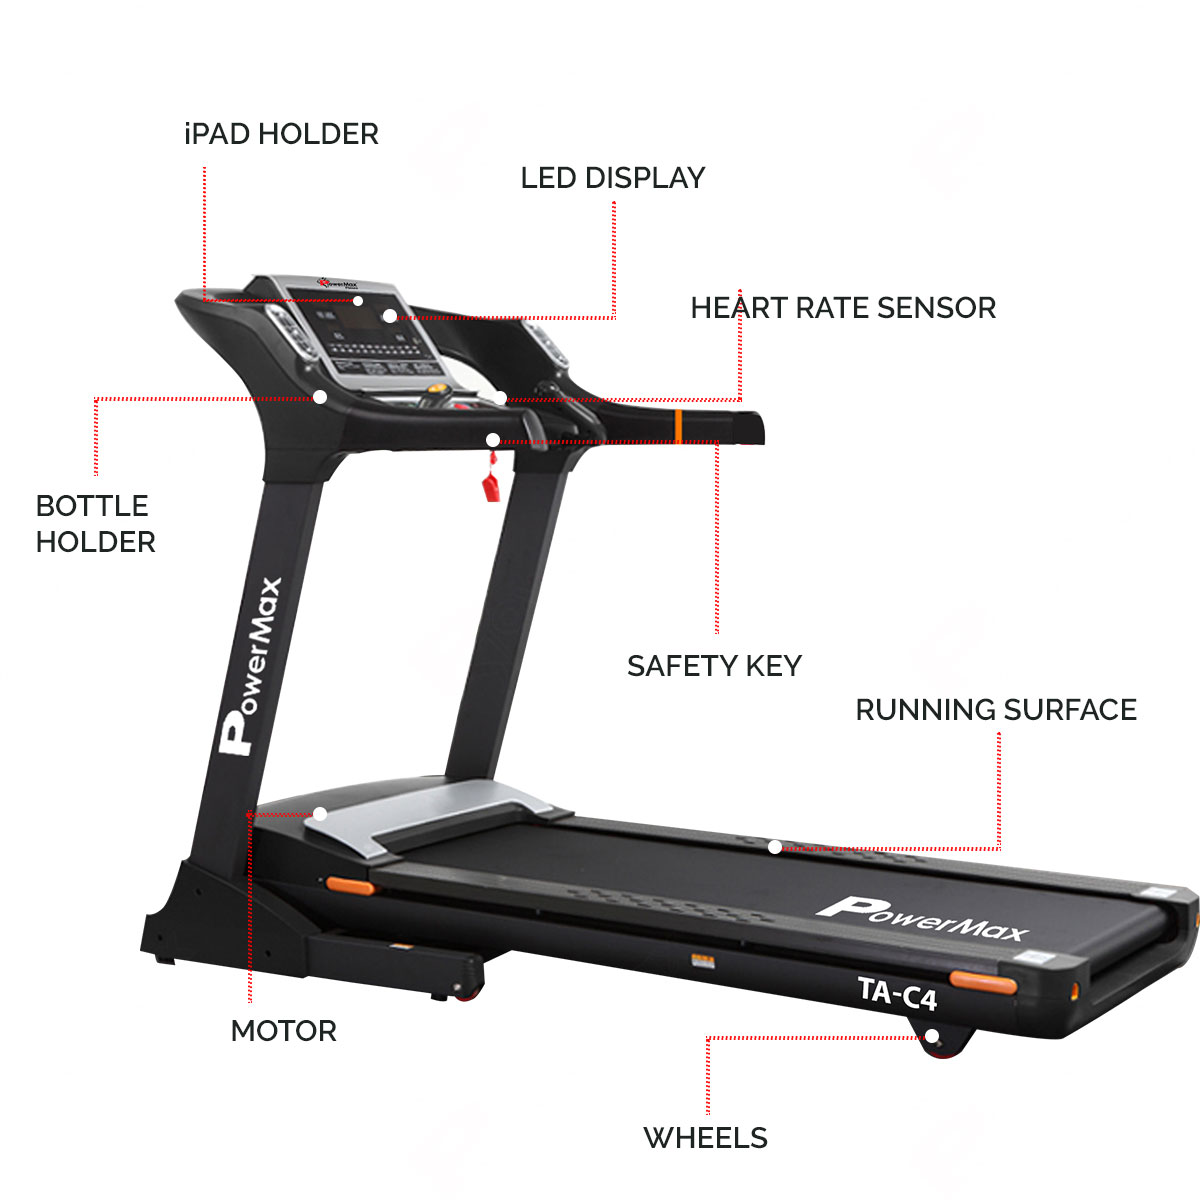 TA-C4 Commercial Motorized AC Treadmill